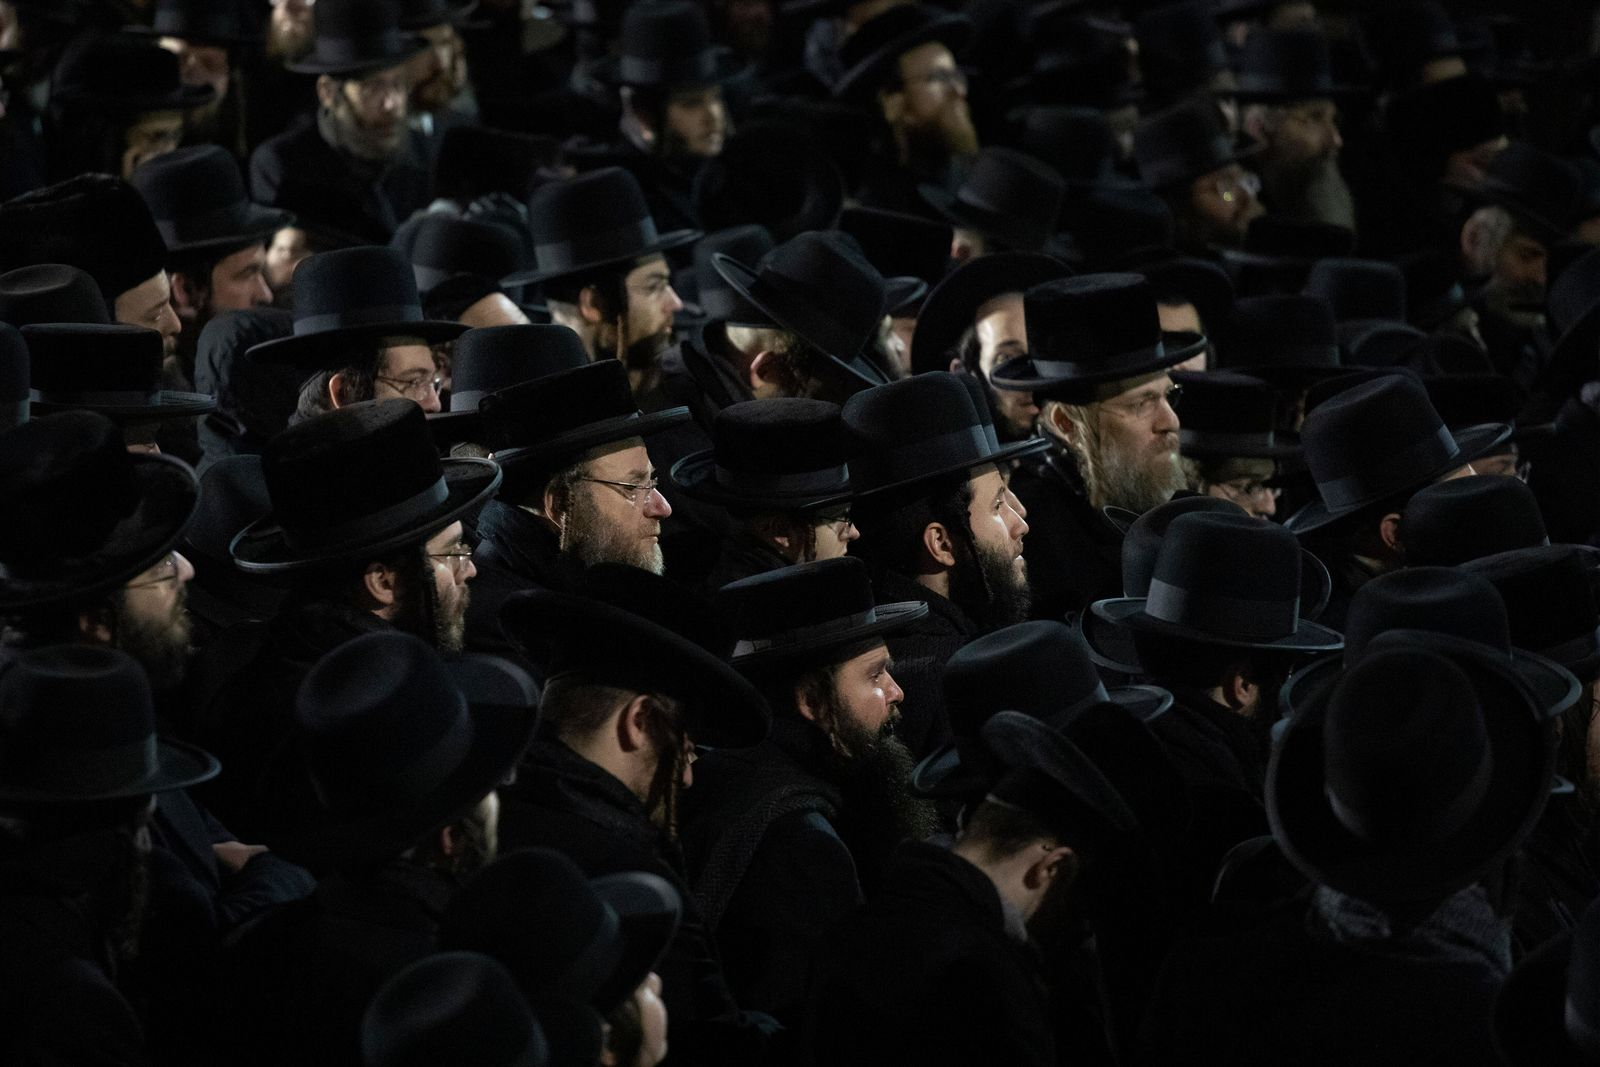 Orthodox Jewish men attend Moshe Deutsch's funeral, Wednesday, Dec. 11, 2019 in the Williamsburg neighborhood of New York. Deutsch was killed Tuesday in a shooting inside a Jersey City, N.J. kosher food market. (AP Photo/Mark Lennihan)